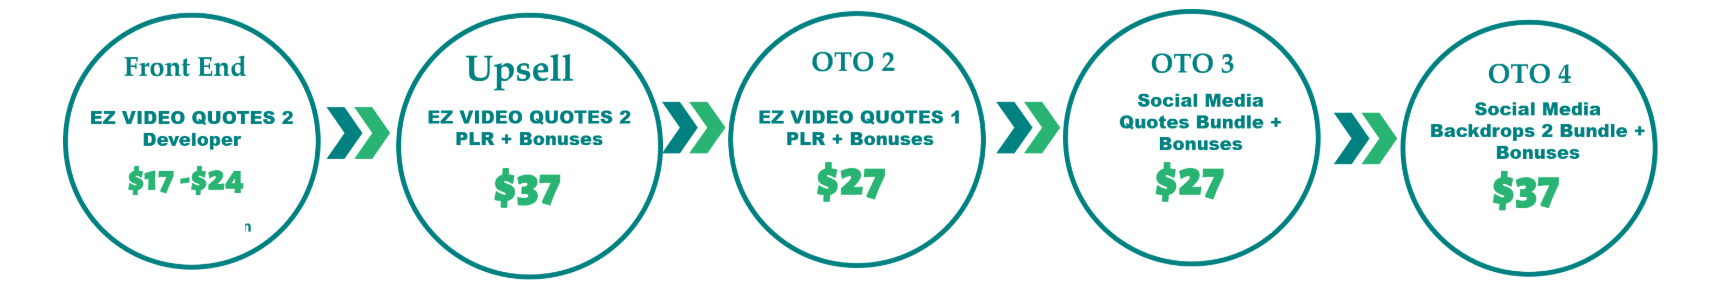 EZ-Video-Quotes-2-Review-Funnel